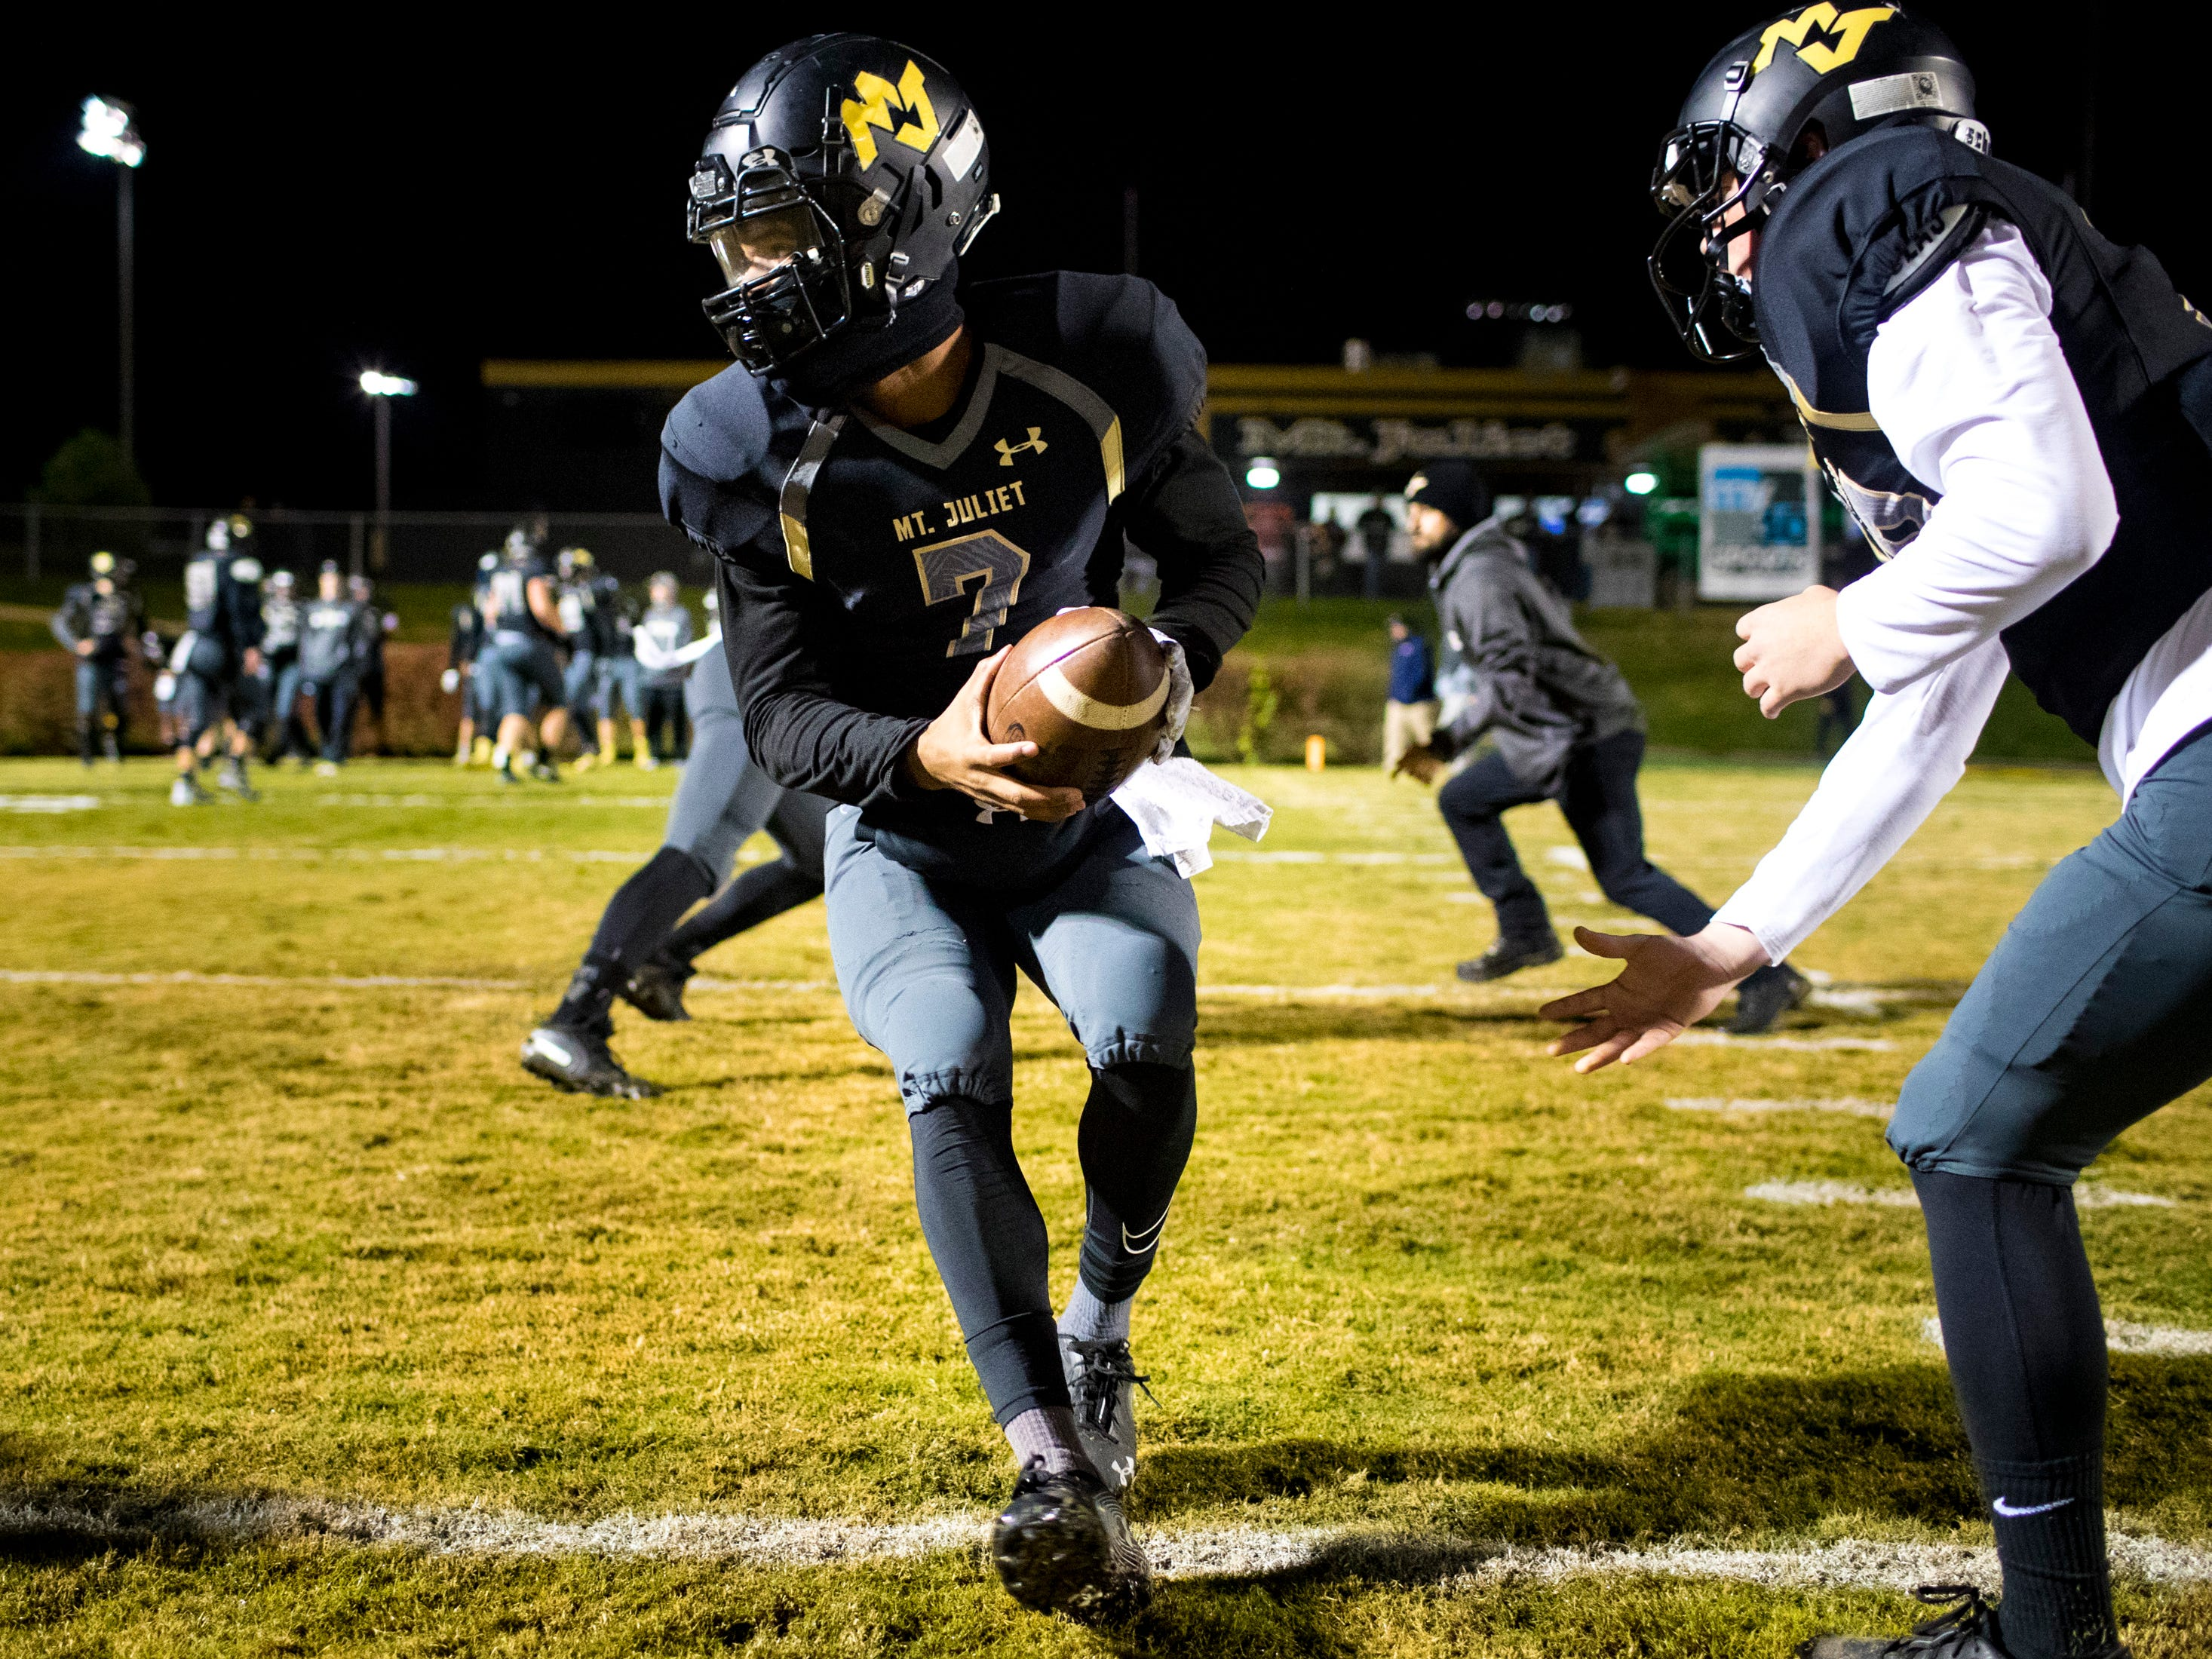 Mt. Juliet's Alvin Mixon (7) warms up before Mt. Juliet's game against Blackman at Mt. Juliet High School in Mt. Juliet on Friday, Nov. 9, 2018.